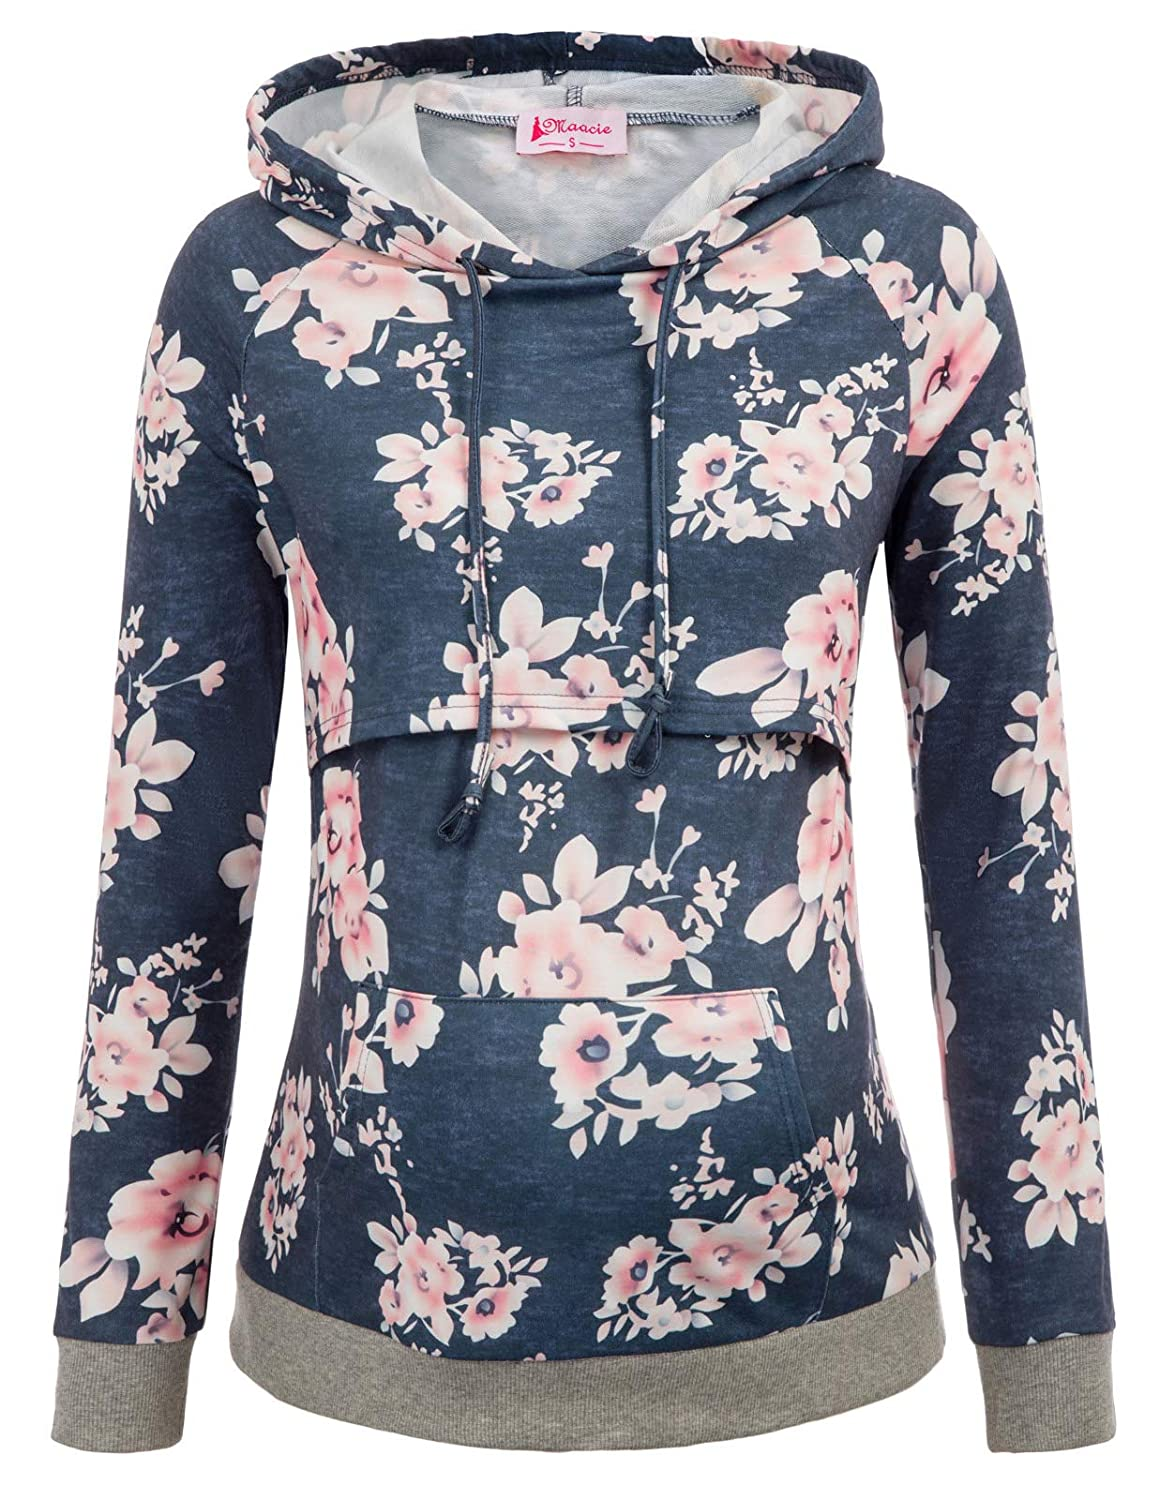 Maacie SHIRT レディース B07K7G2DPN X-Large|Floral 3 Floral 3 X-Large